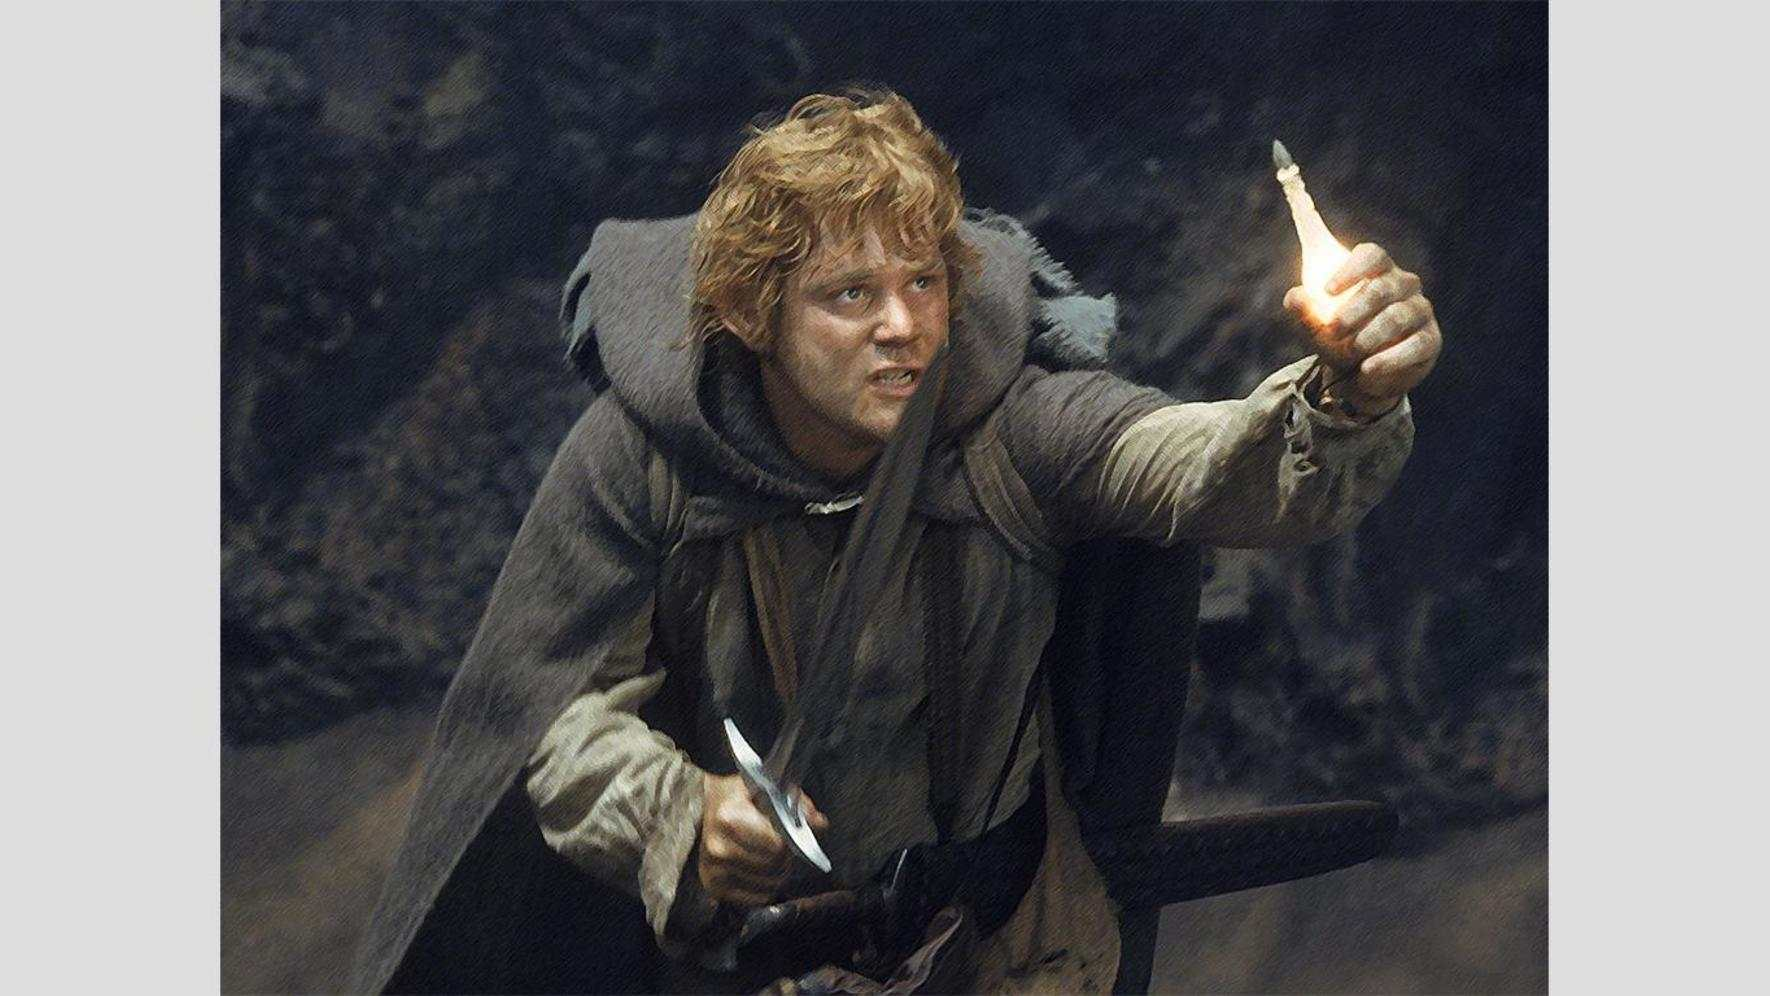 """Sean Astin als Samwise Gamgee in Peter Jackson's """"The Lord of the Rings"""" Trilogie"""